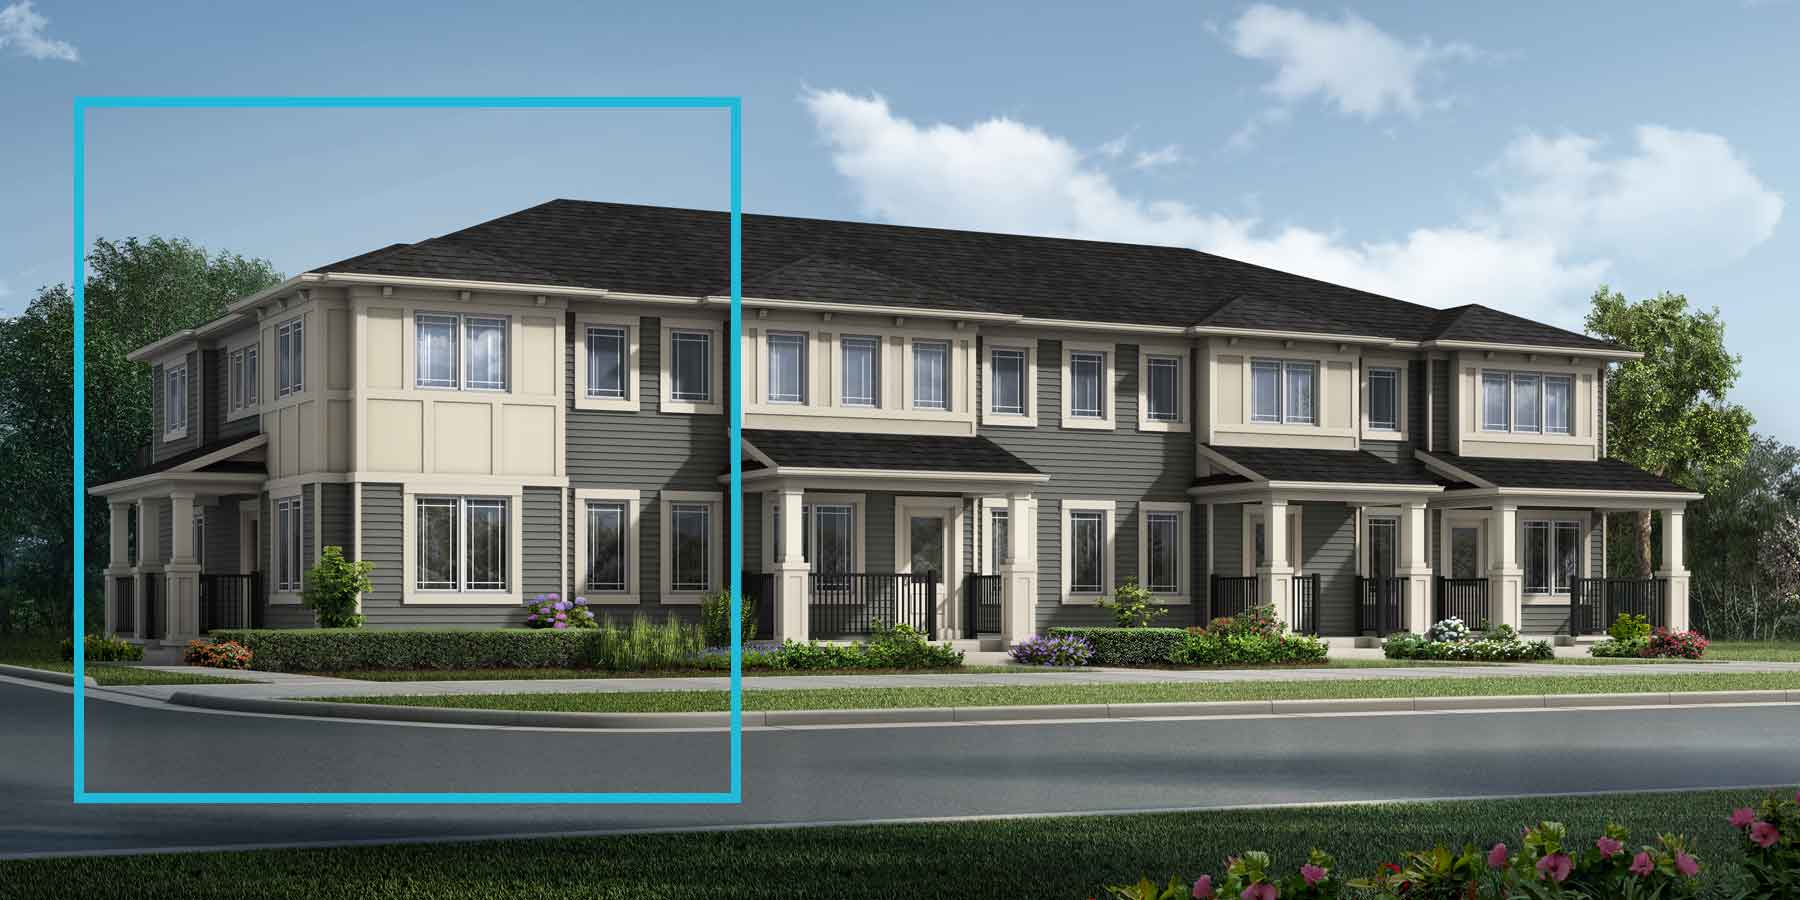 Windsor Corner Plan TownHomes at Southwinds in Airdrie Alberta by Mattamy Homes